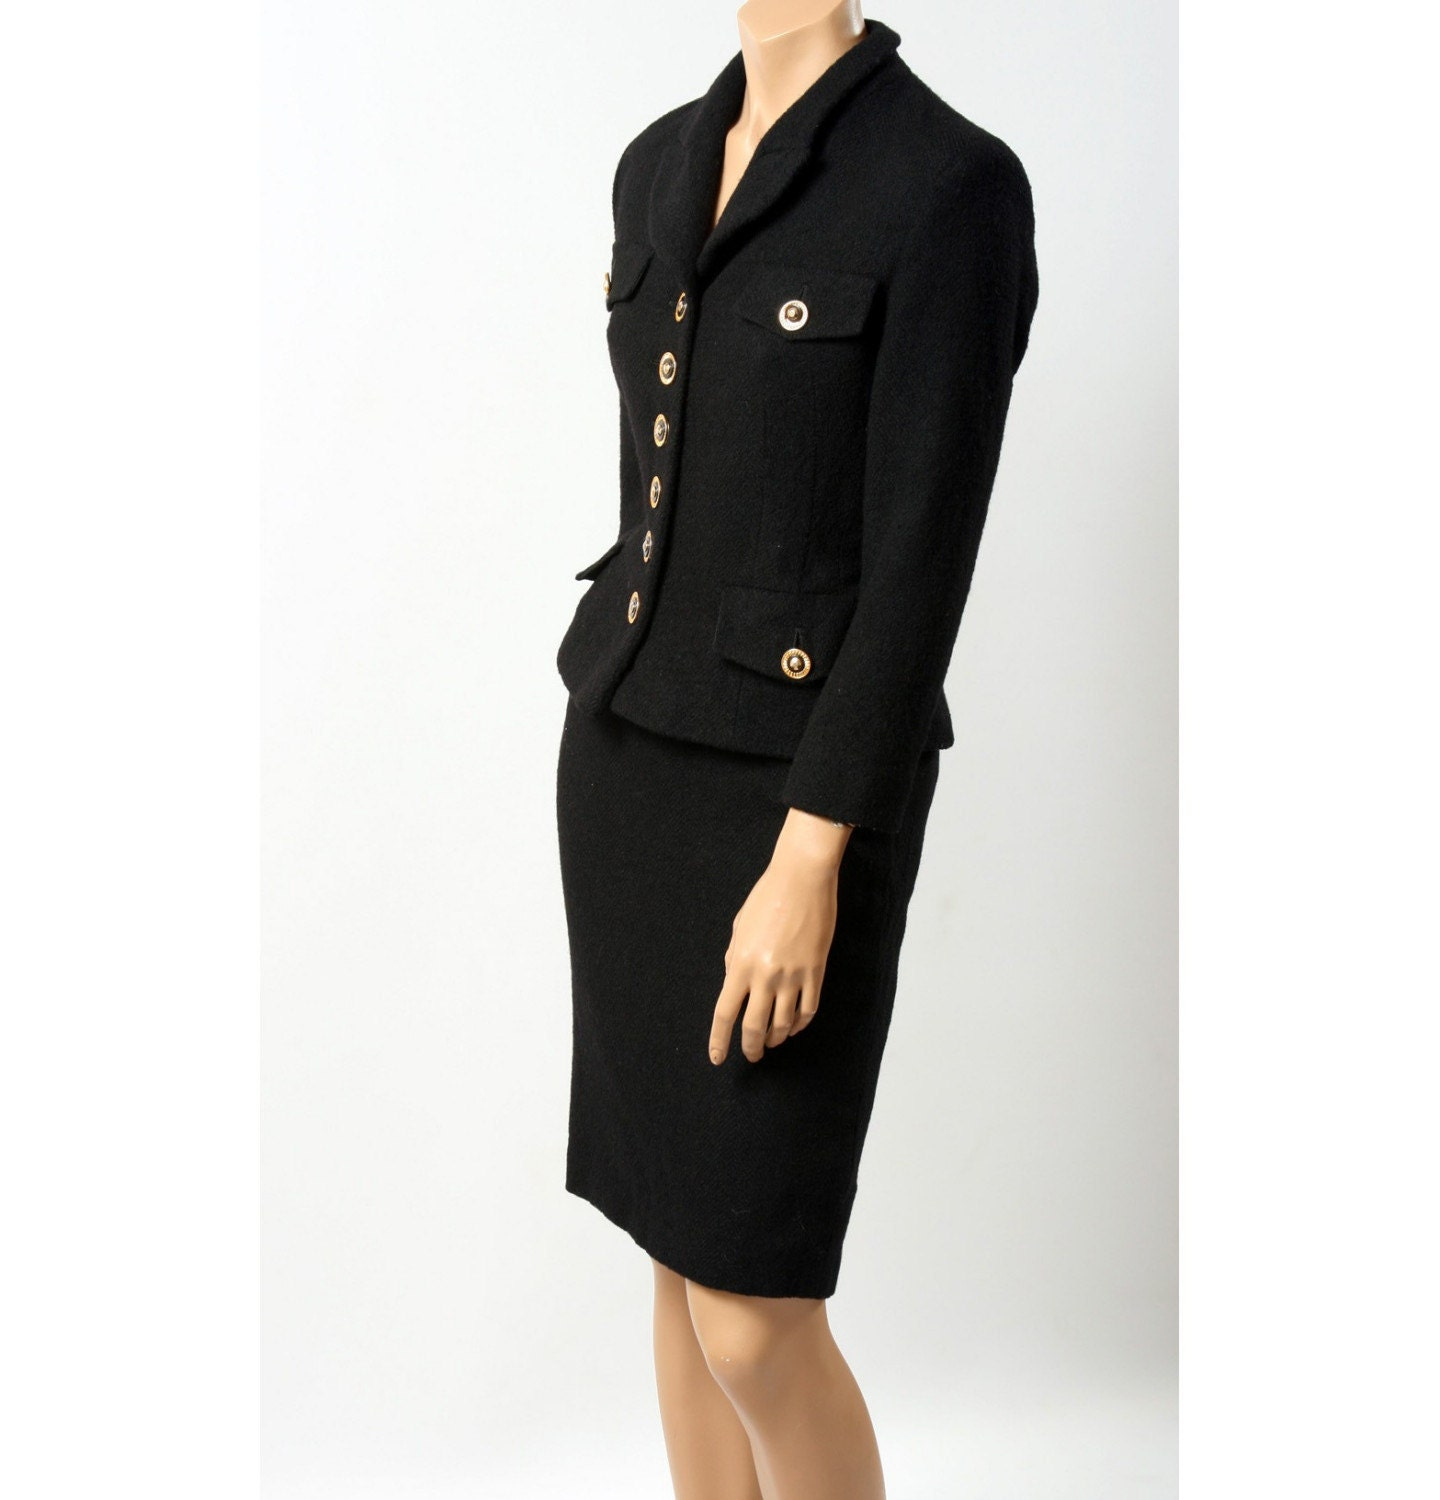 Coco chanel style vintage black woman suit with by betaboutique